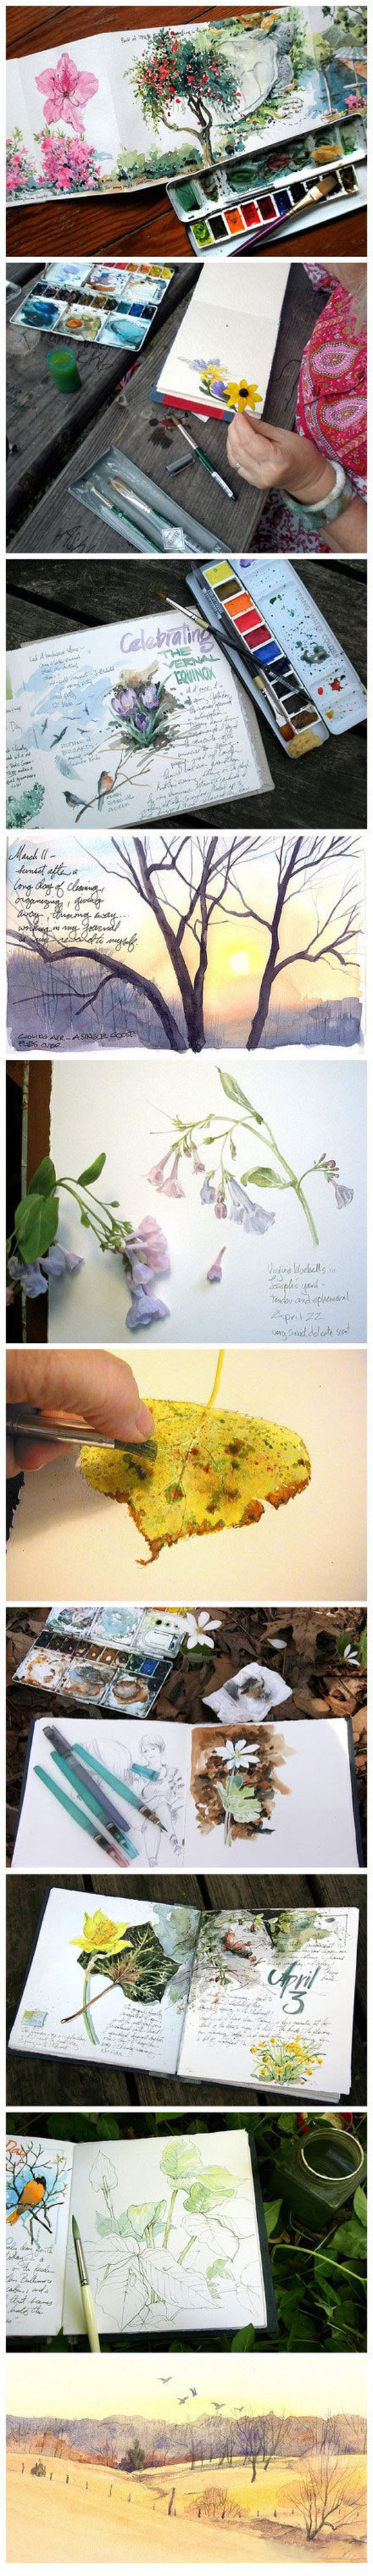 cool-color-journal-water-flowers-plants